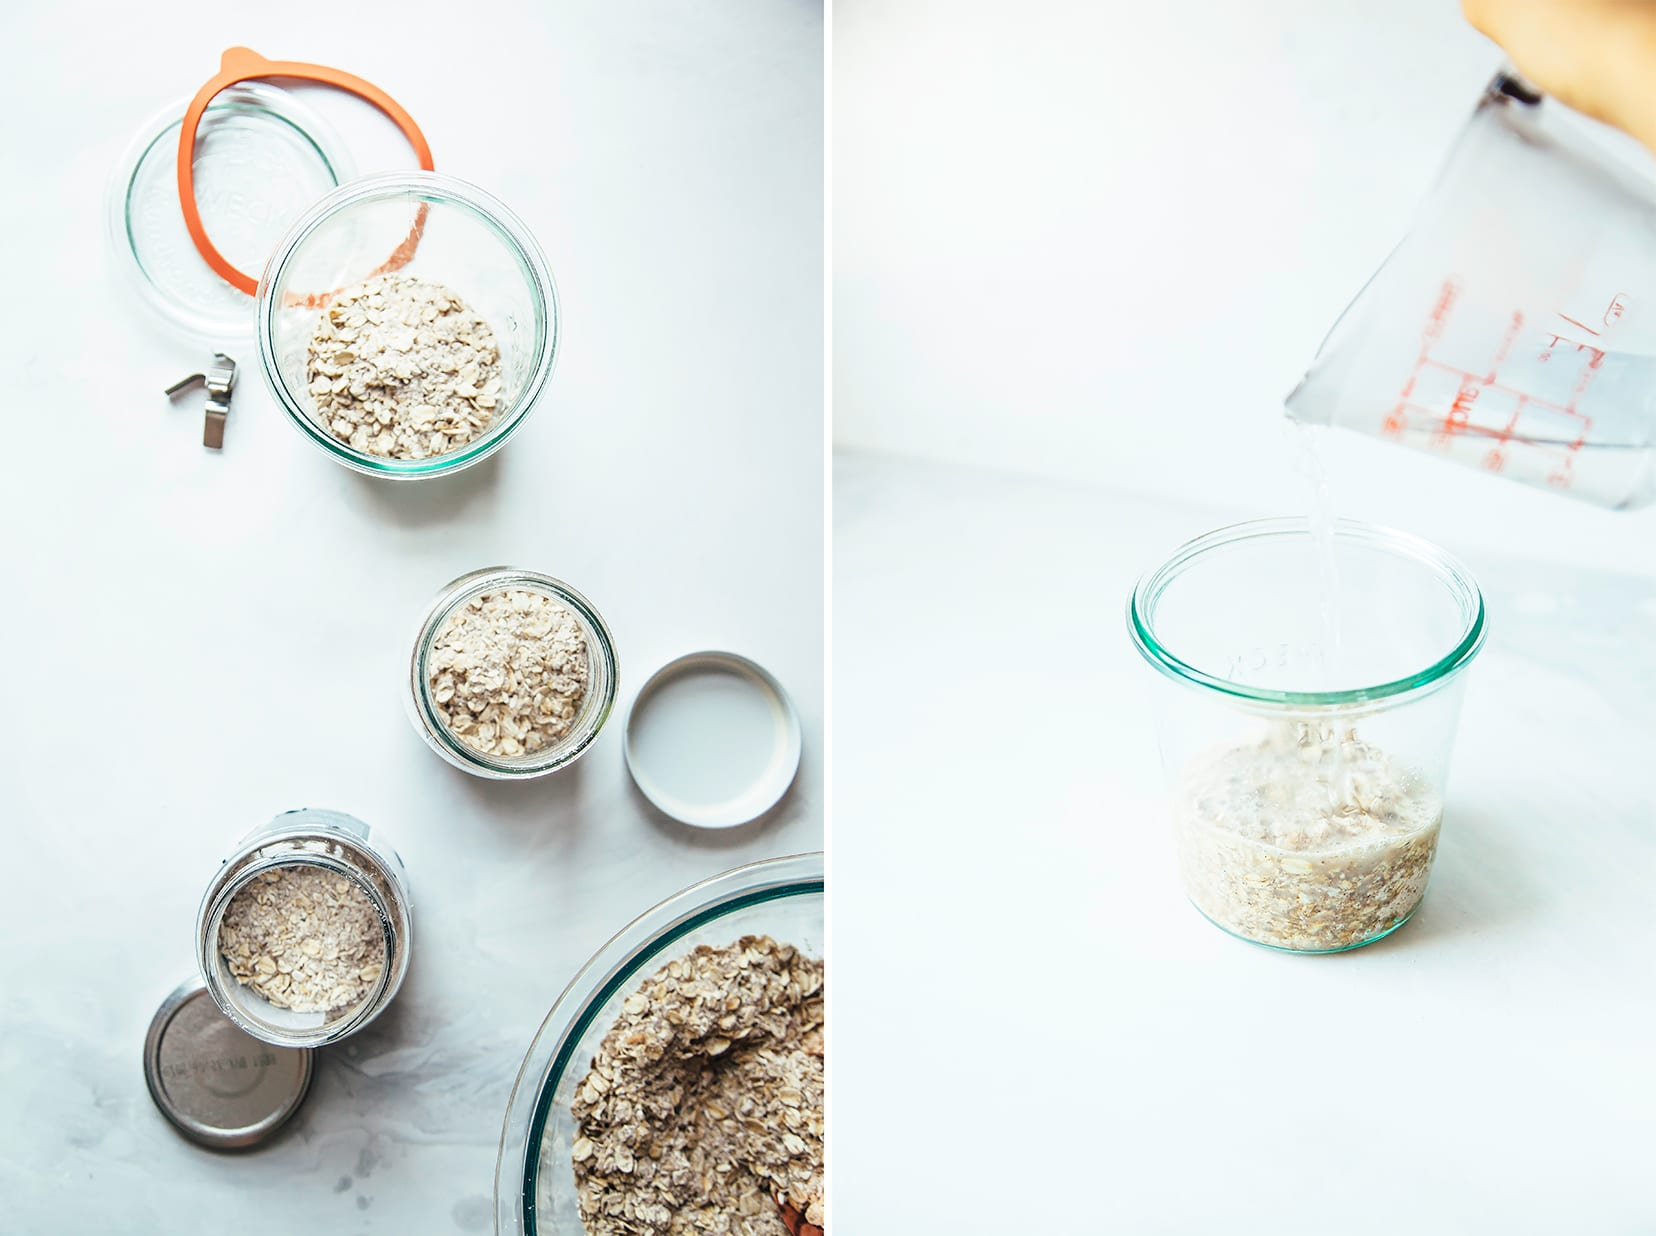 Images show DIY instant oatmeal packed into jars.